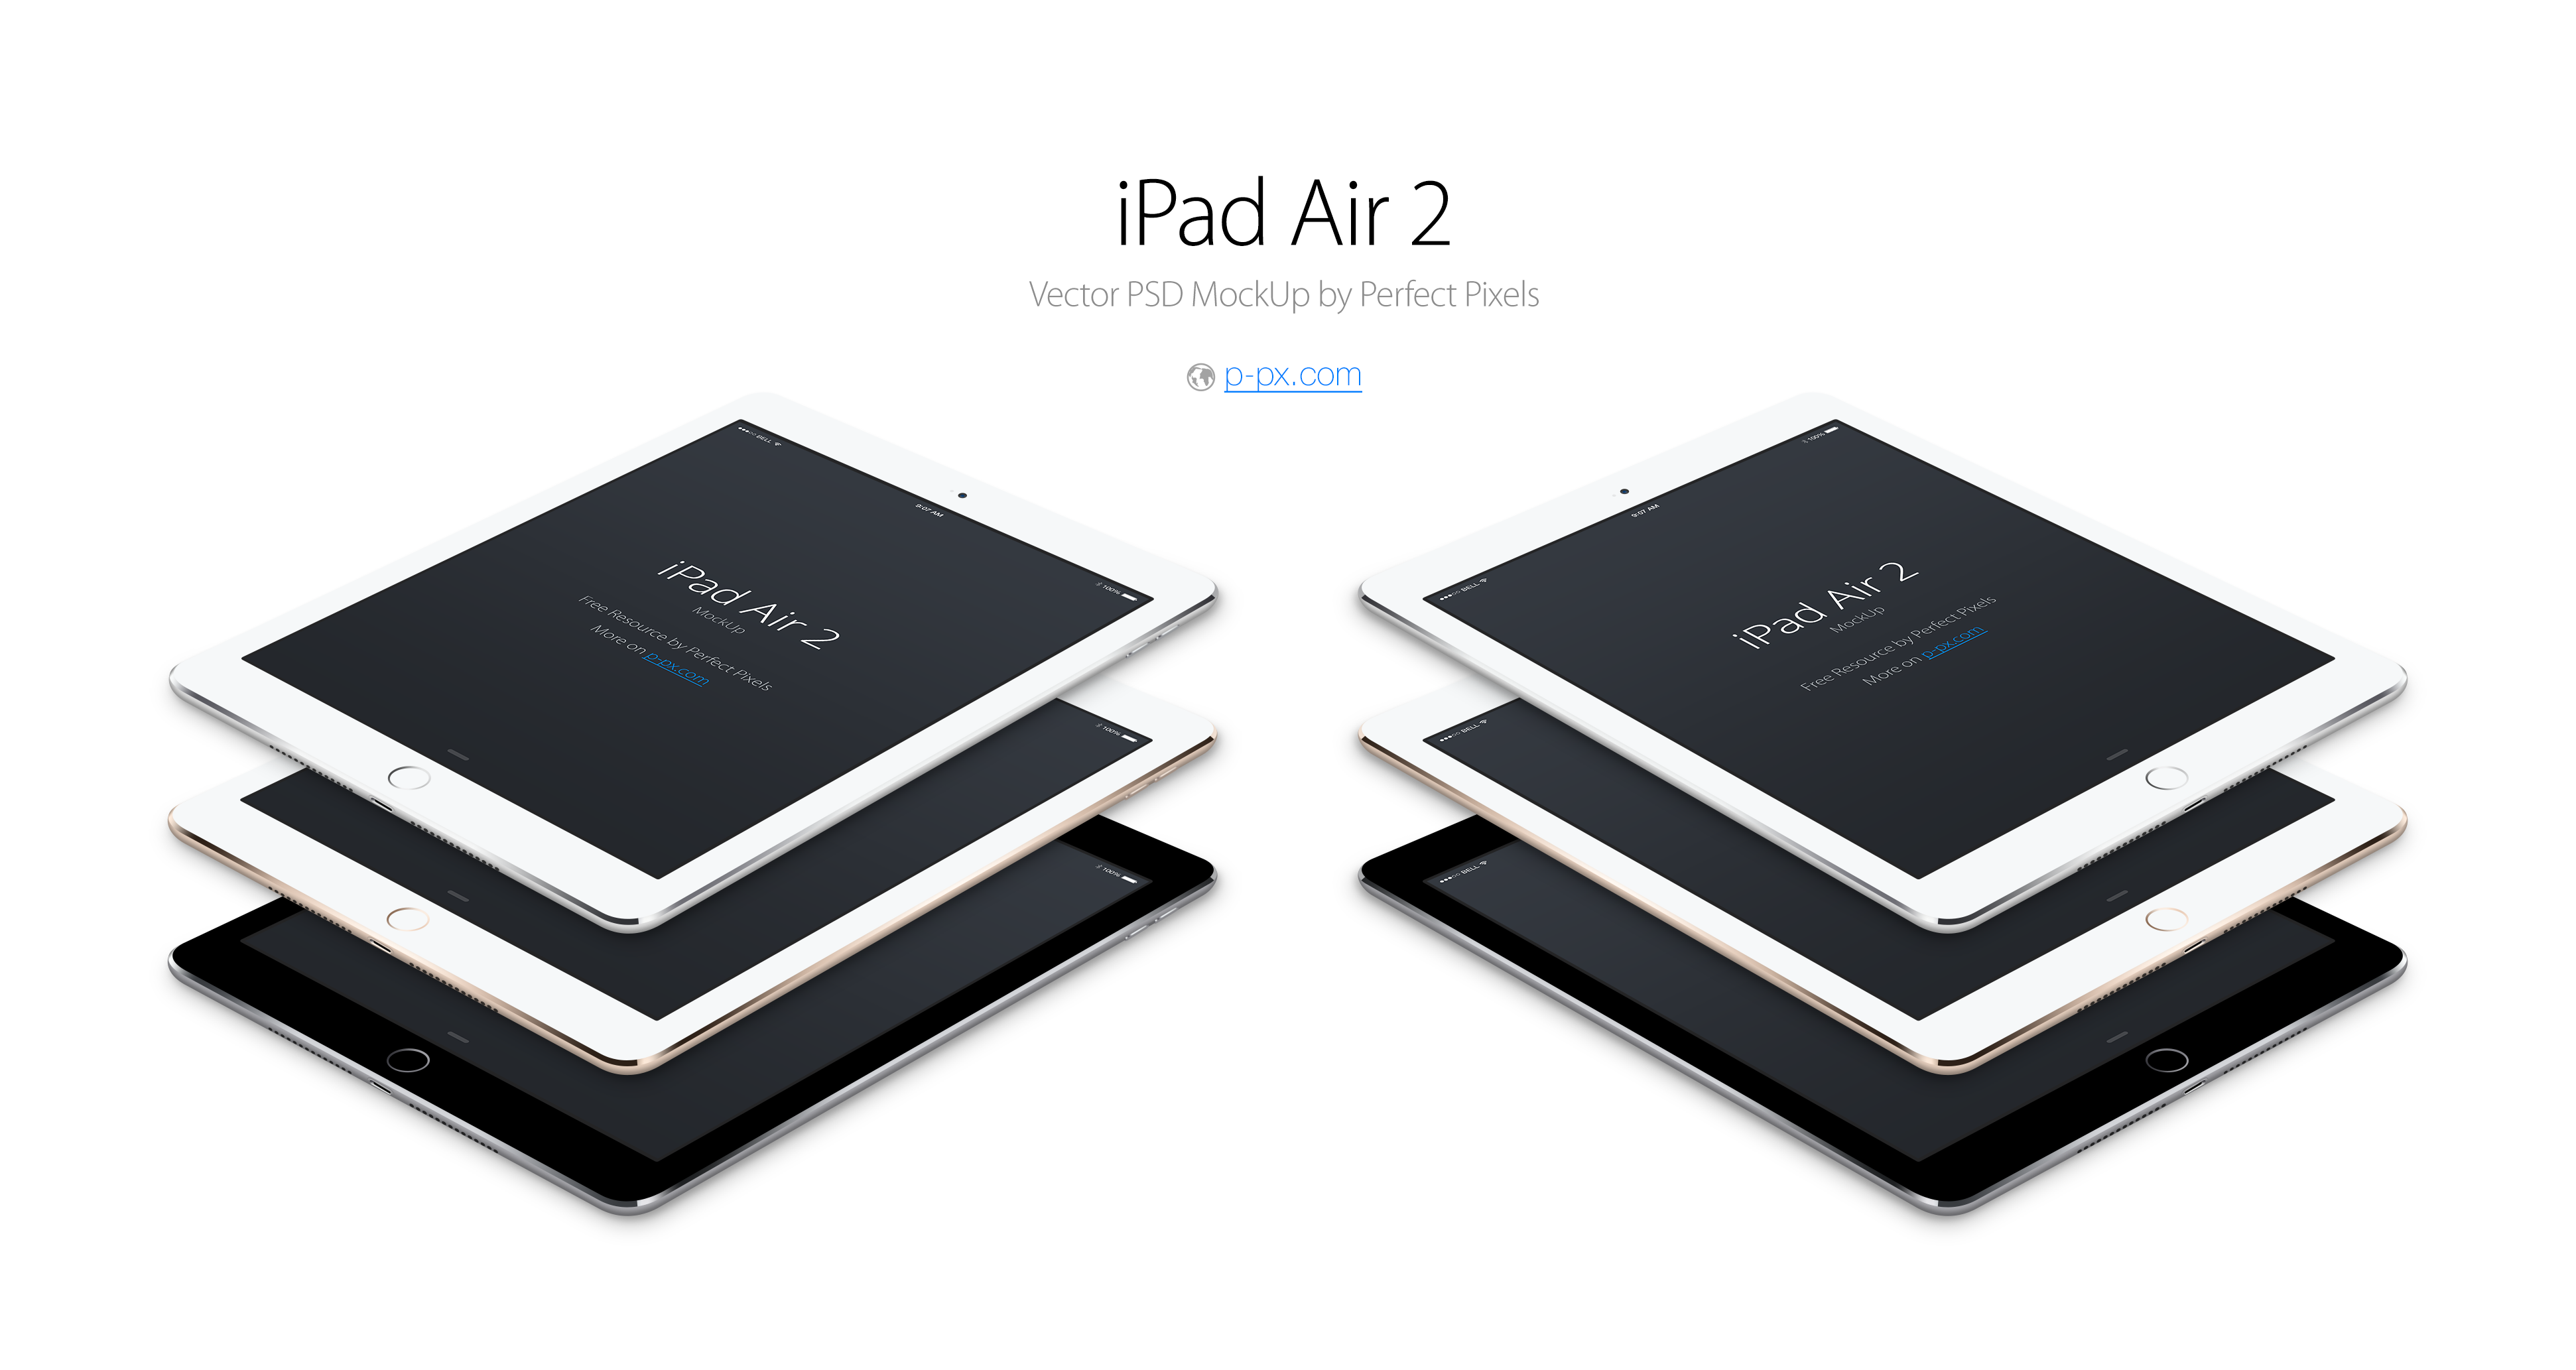 ipad air 2 angled vector psd mockup. perfect pixels. psd templates, Powerpoint templates